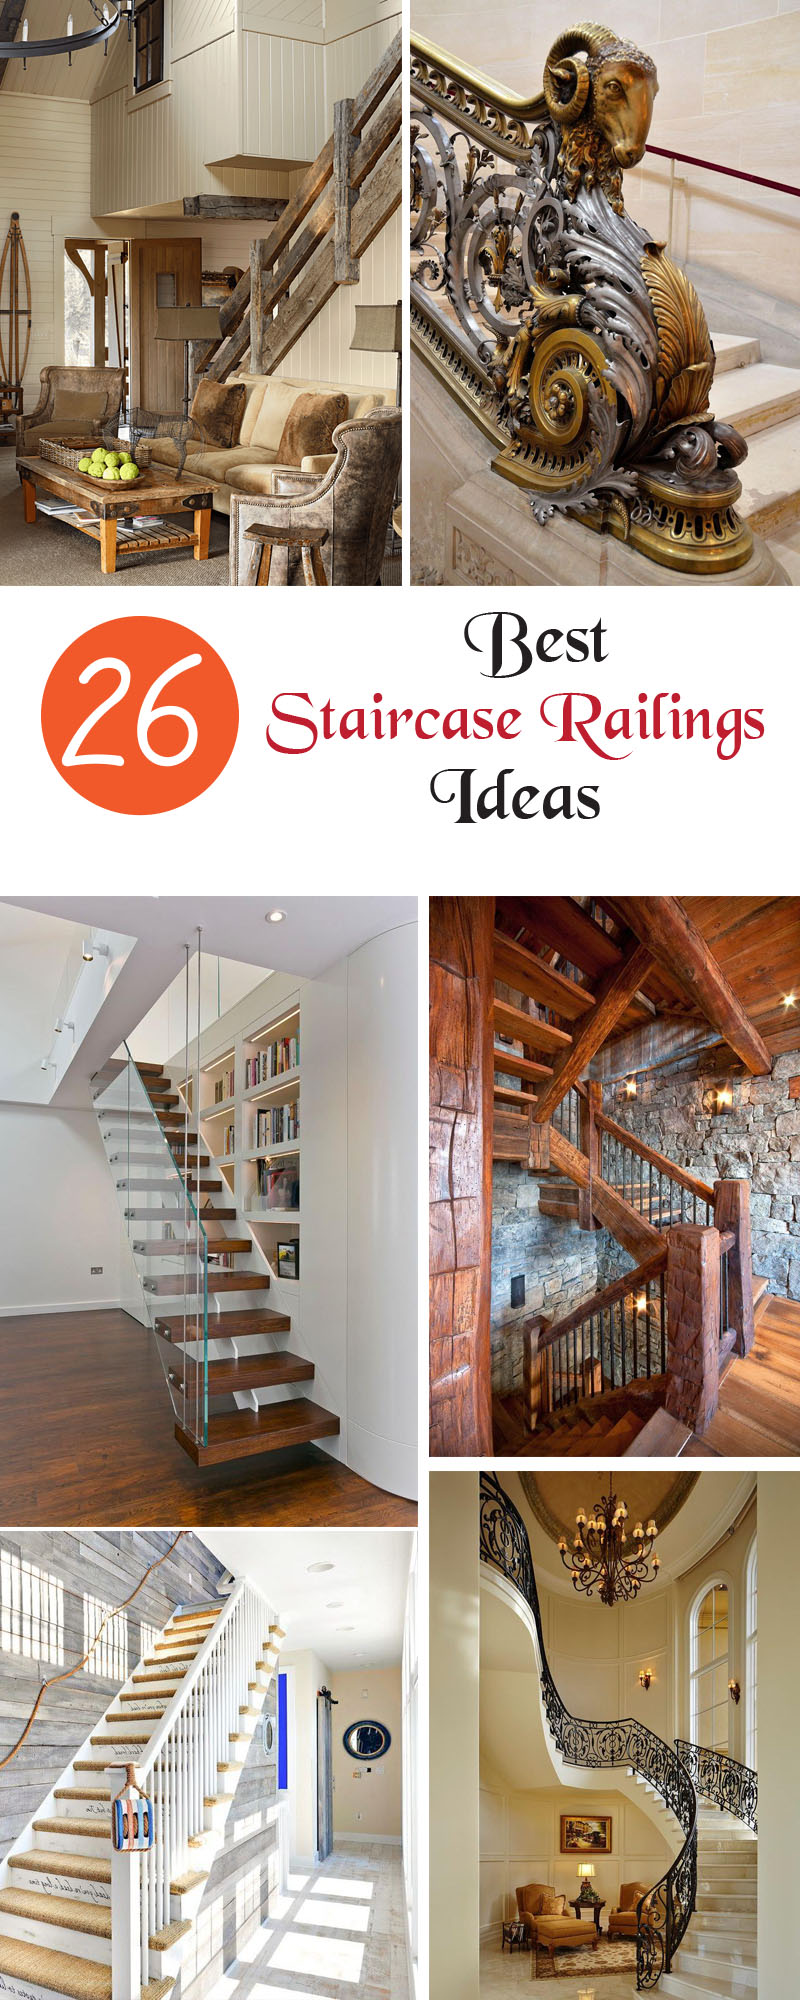 best staircase railings ideas